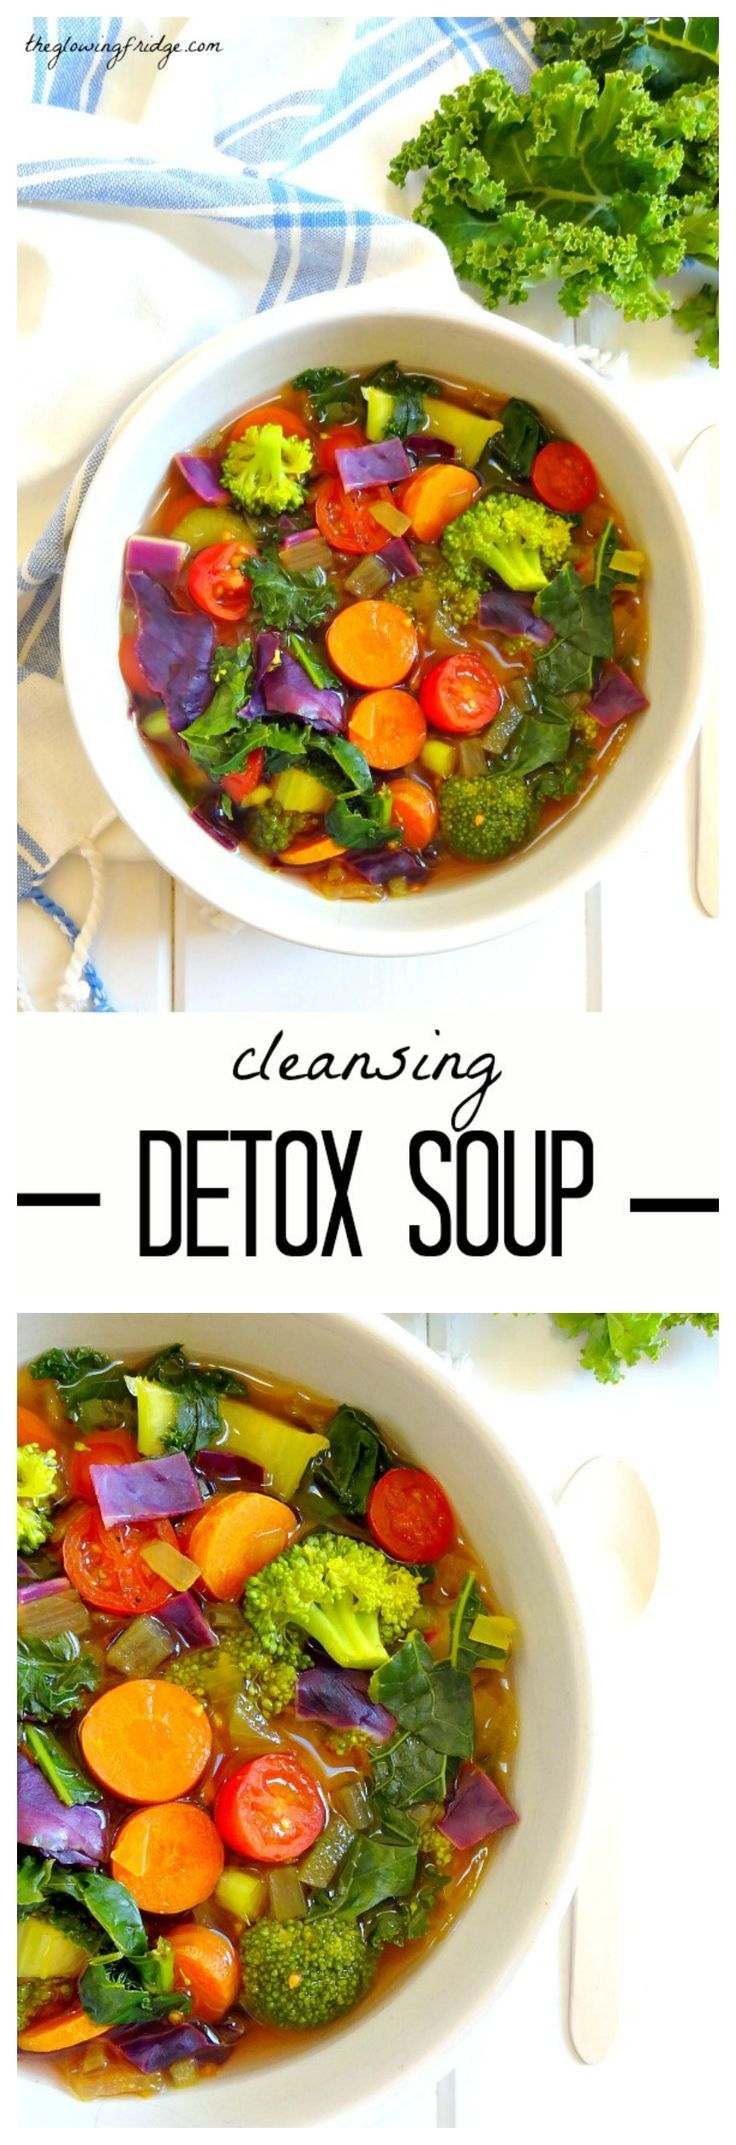 Cleansing Detox Soup || Immune-boosting, wholesome, vegan, oil free, and gluten free warming soup. Perfect for fighting off colds and flu while cleansing with natural, delicious immunity boosting whole foods.: